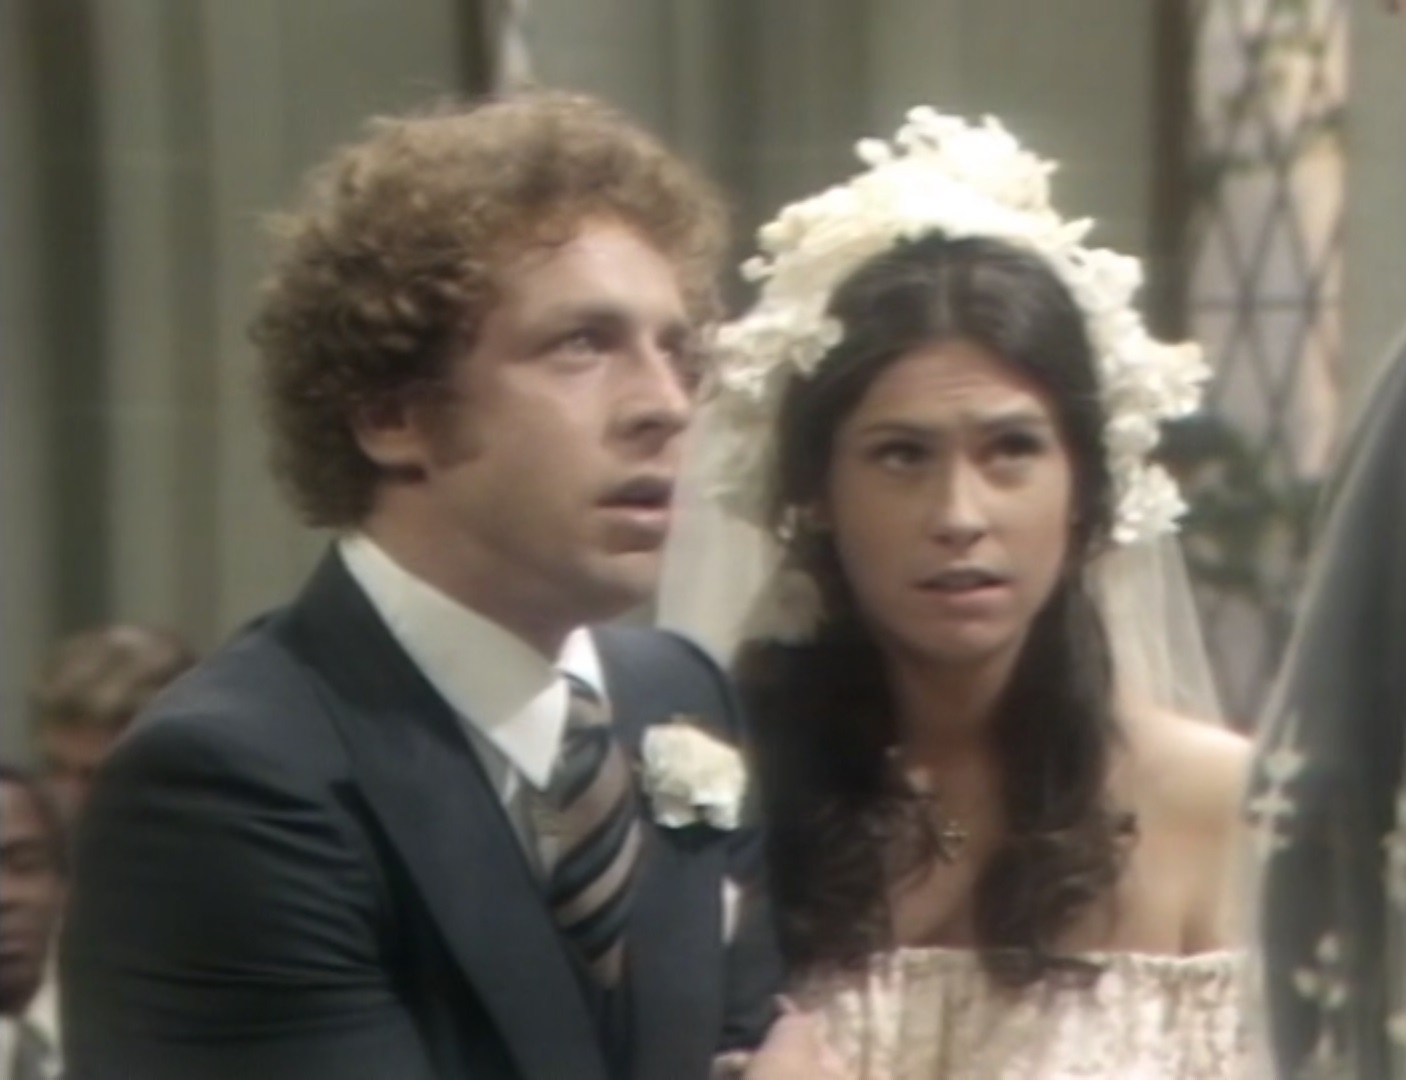 Soap Episode 2 3 Tv Episode 1978 Imdb Diana canova was born on june 1, 1953 in west palm beach, florida, usa as diana rivero. soap episode 2 3 tv episode 1978 imdb